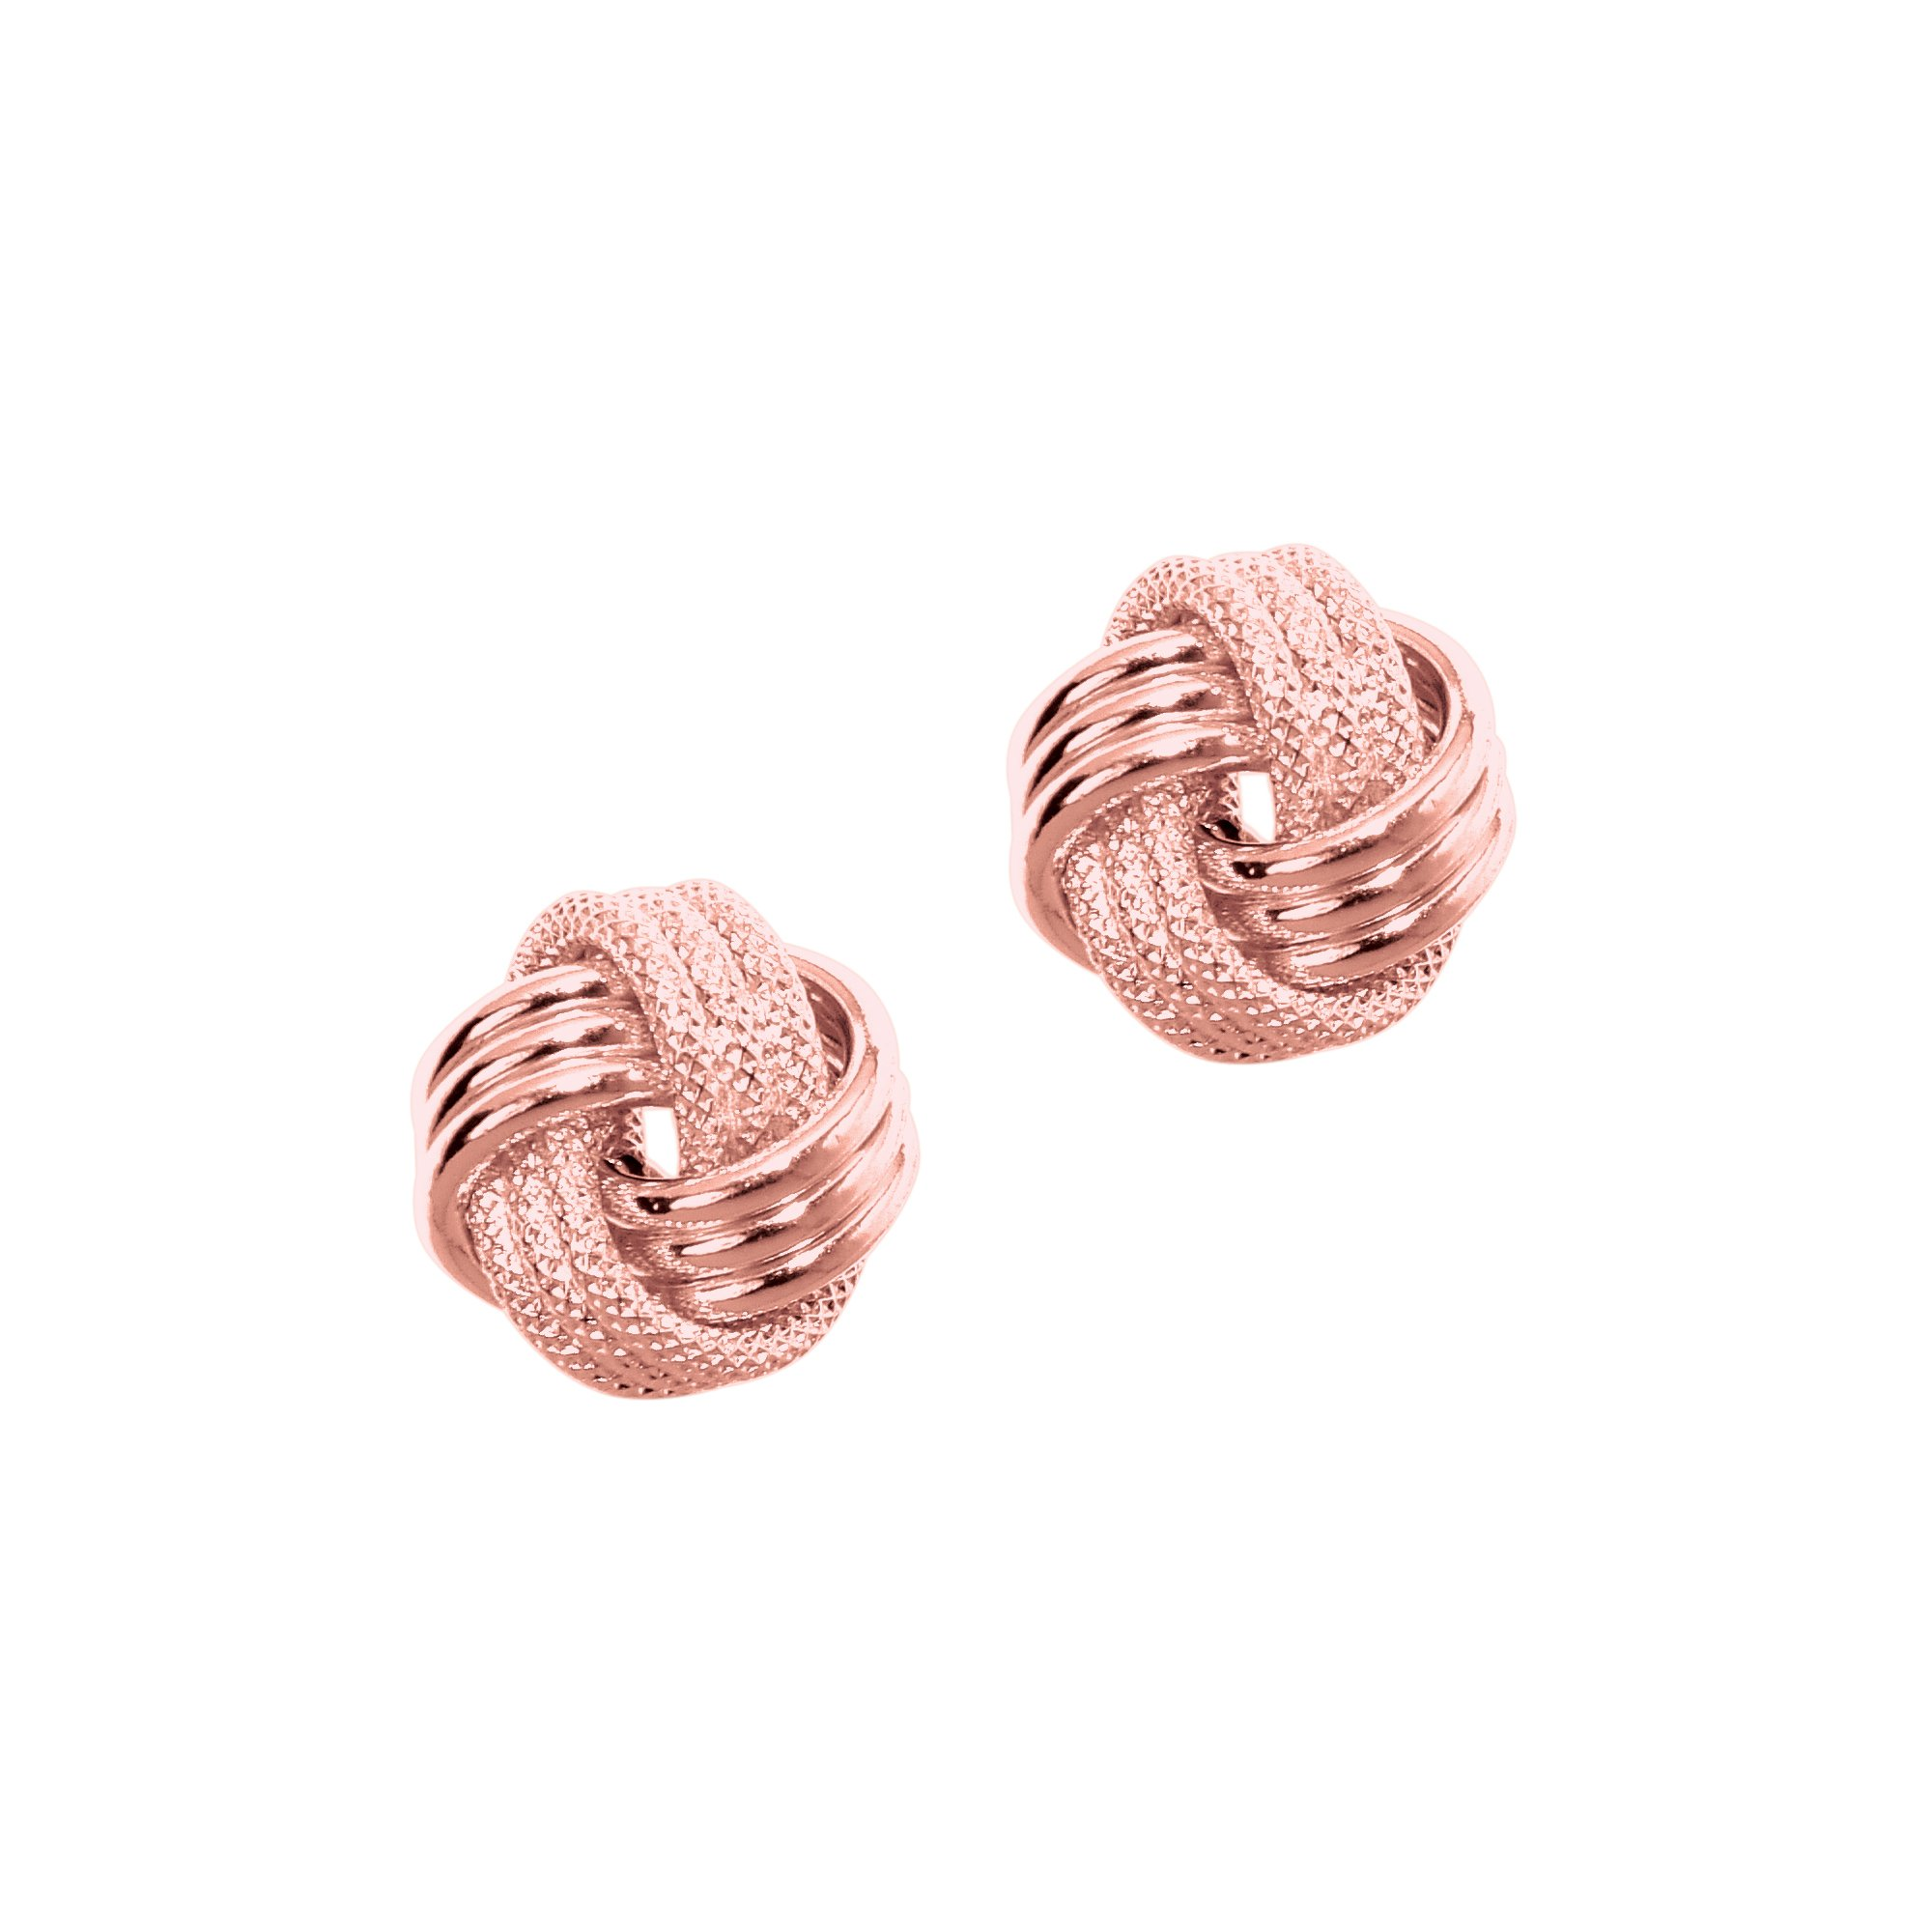 MCS Jewelry 14 Karat Rose, White OR Yellow Gold Love Knot Earrings (9 mm Diameter) (rose-gold)